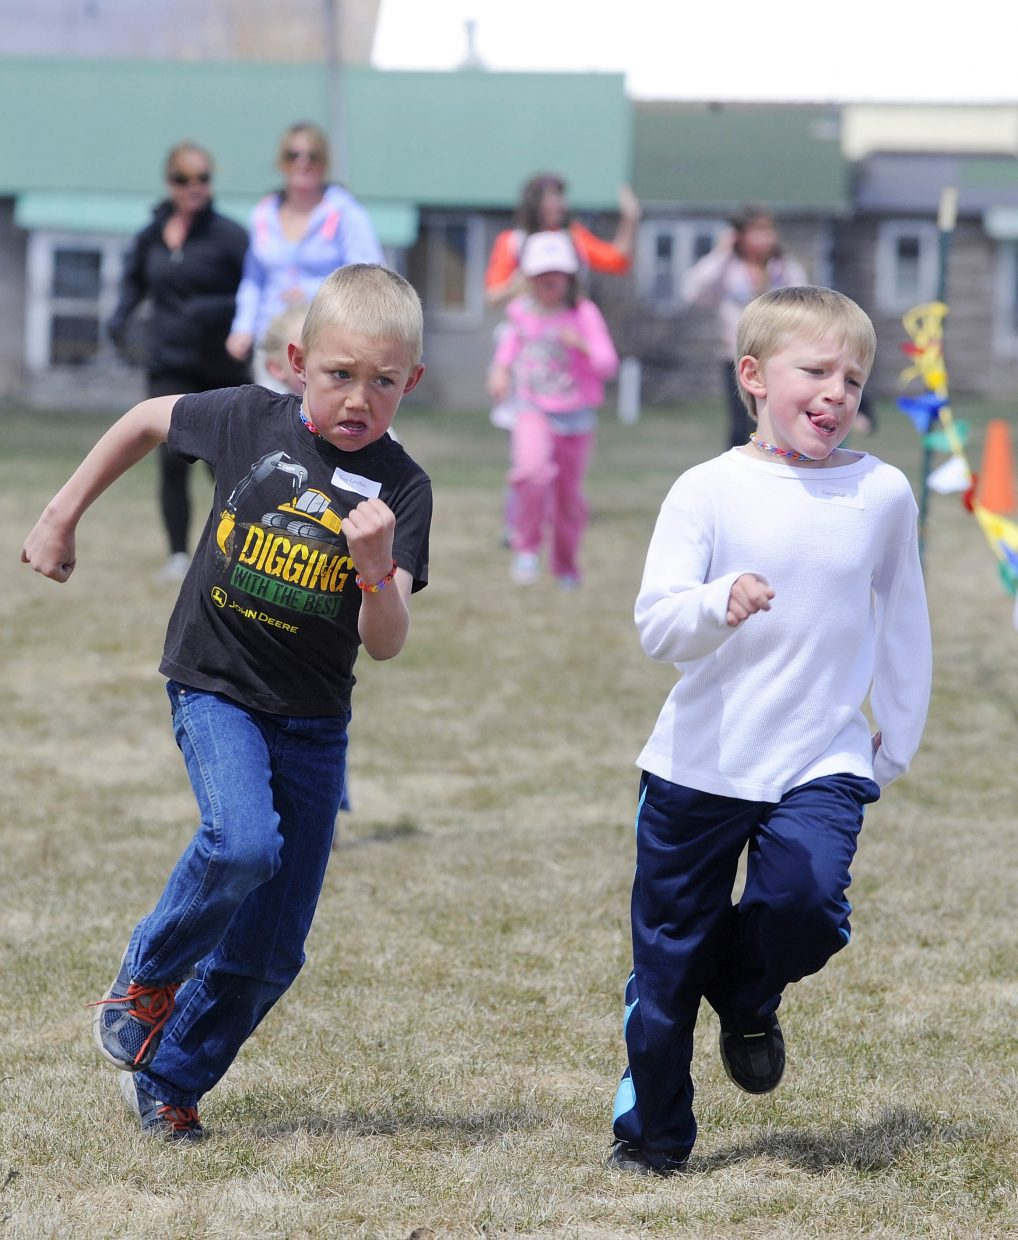 South Routt Elementary School second graders Trey Louthan and Garren LaCroix race to the finish line Thursday during the school's annual mile-long fun run. Fifth grader Liam Yaconiello was the first boy to finish and third grader Shelby Geiger was the first girl.